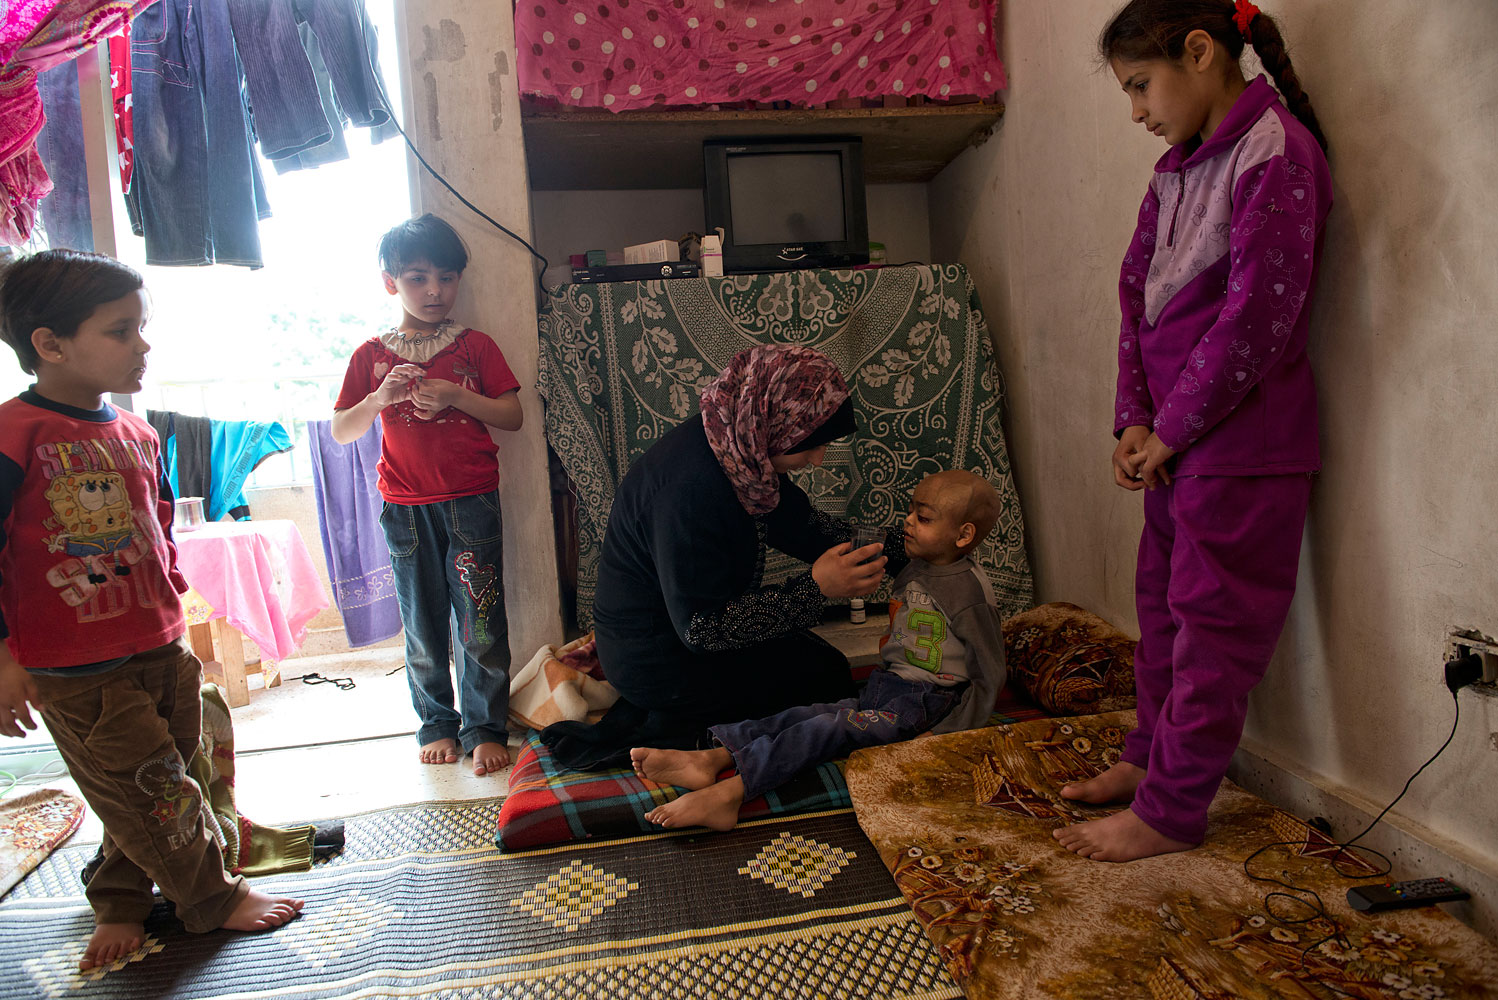 Feryal Delly, a Syrian refugee, gives water to her 4-year-old son Zacharia on March 9. Zacharia, who has a brain tumor, lives with his family in a rented apartment in Halat, north of Beirut.